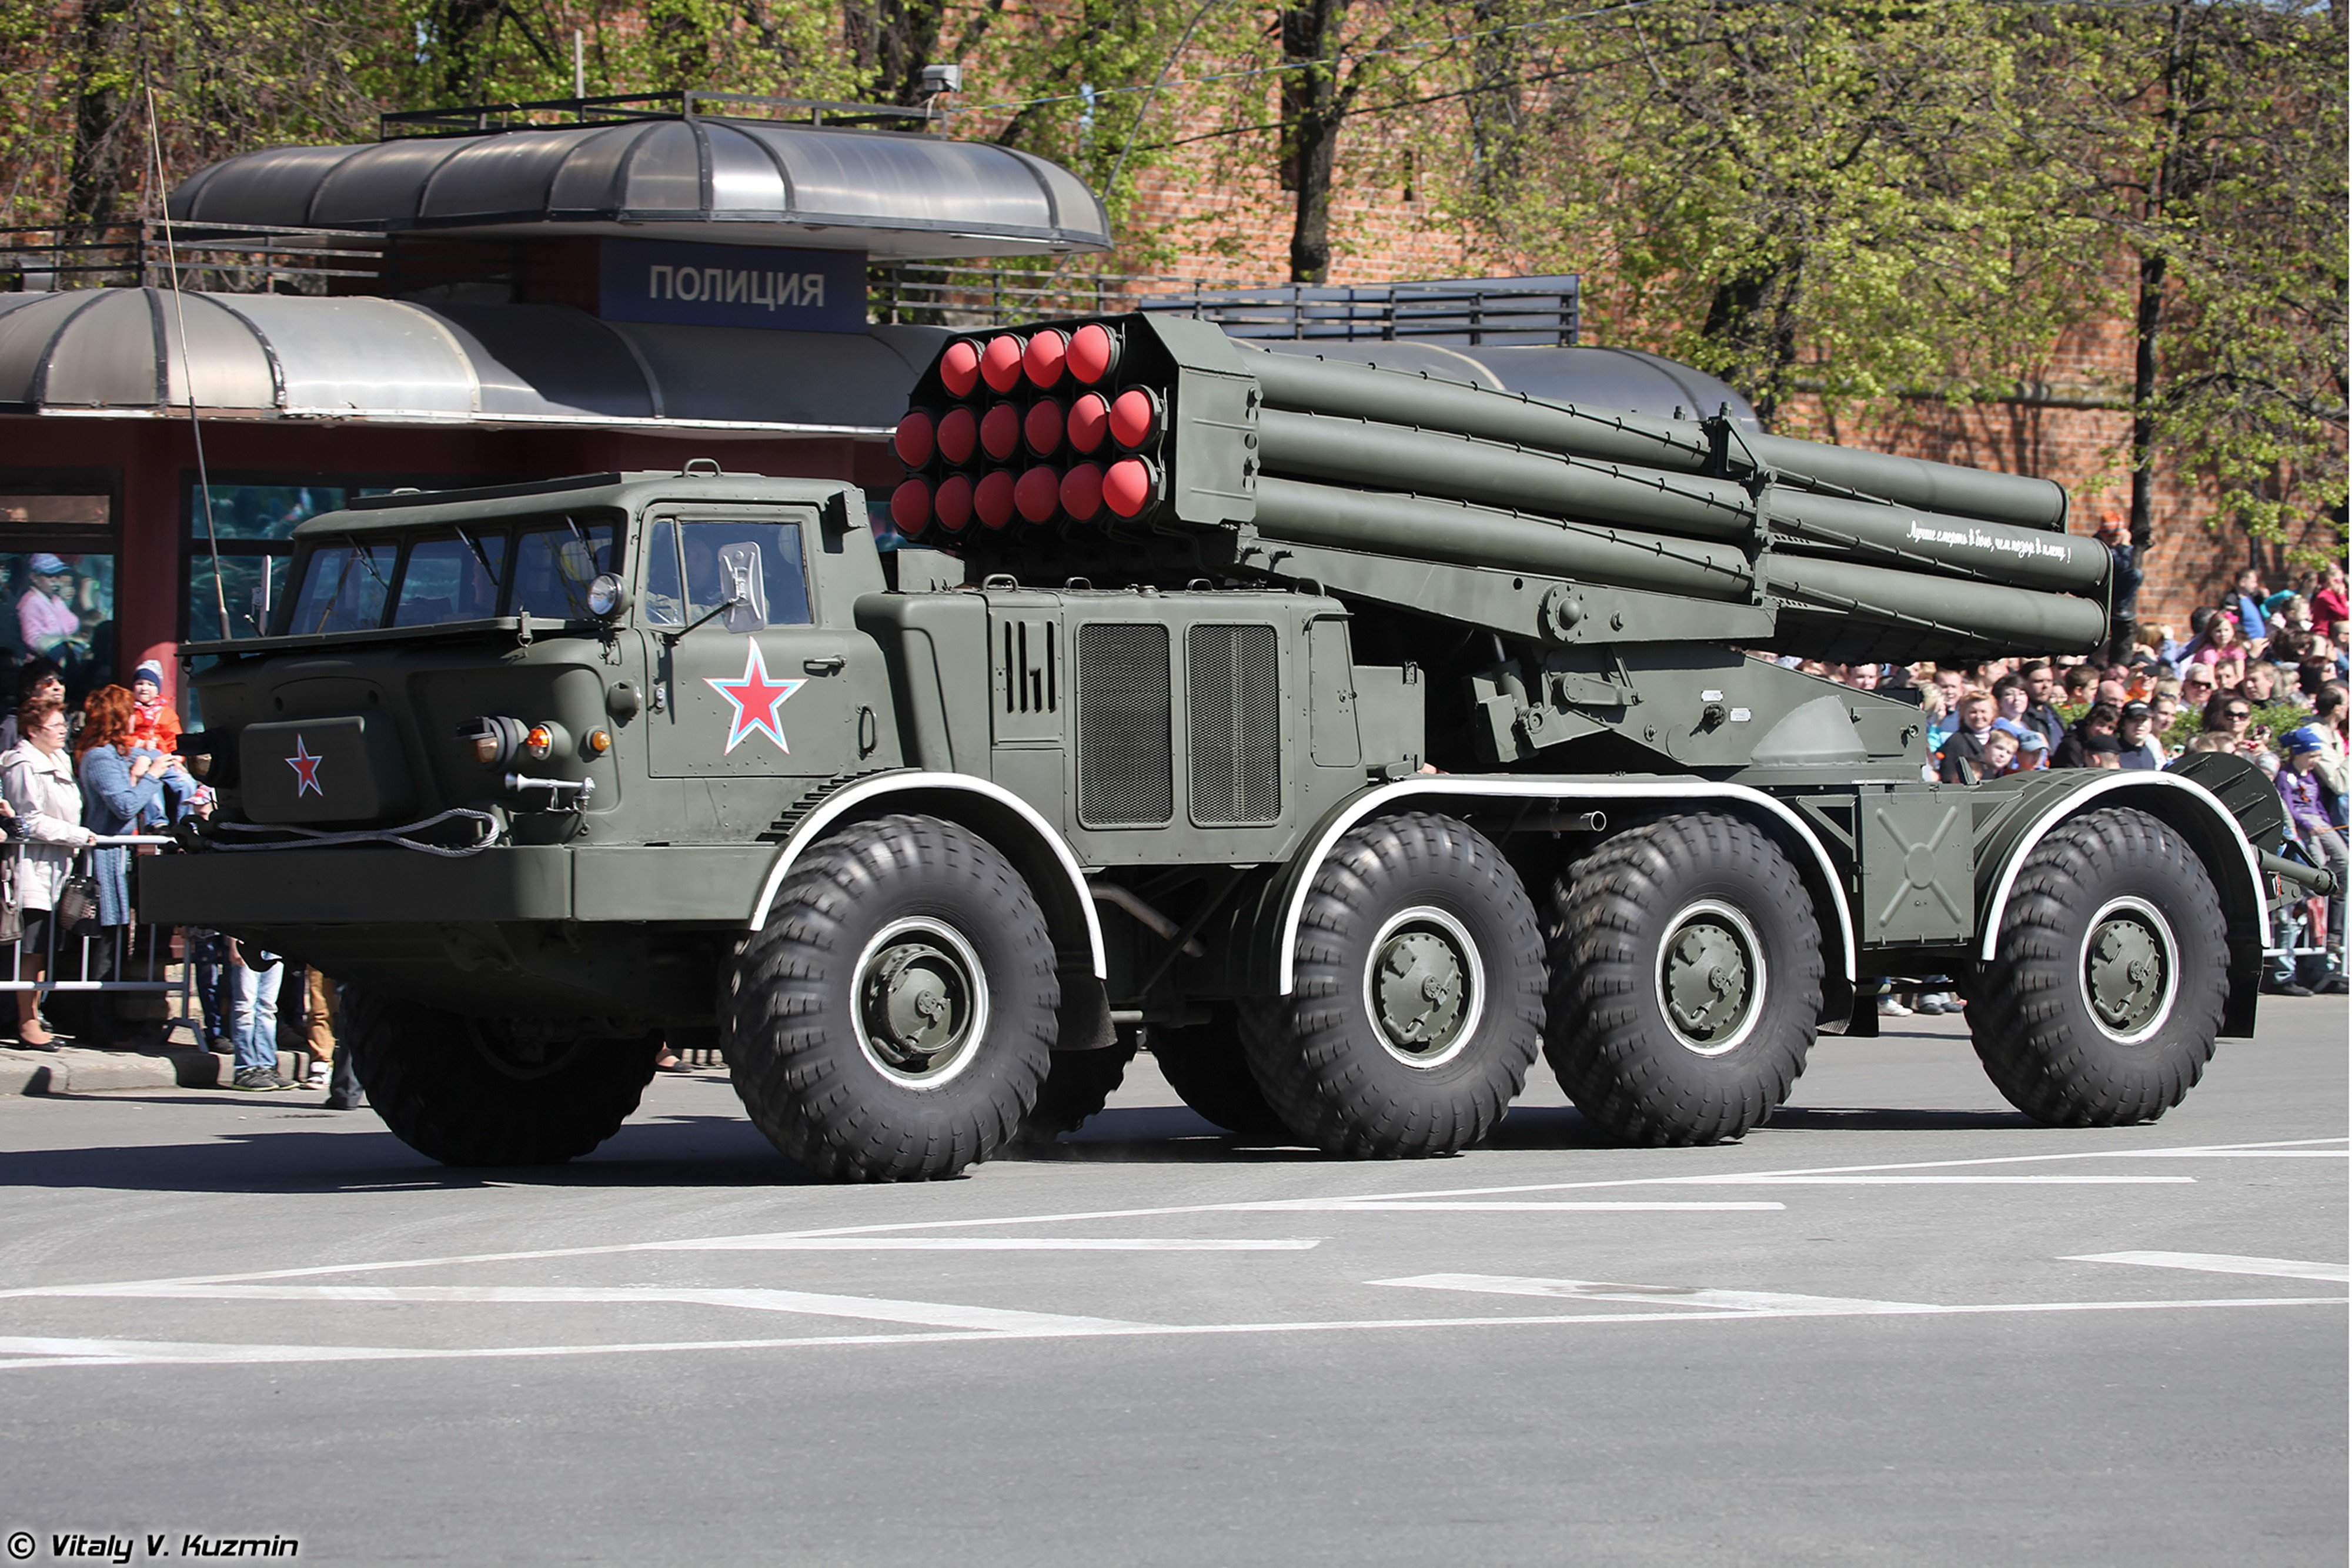 2014 Victory Day Parade-in-Nizhny-Novgorod Russia Military Russian Army Red-Star truck missile ...